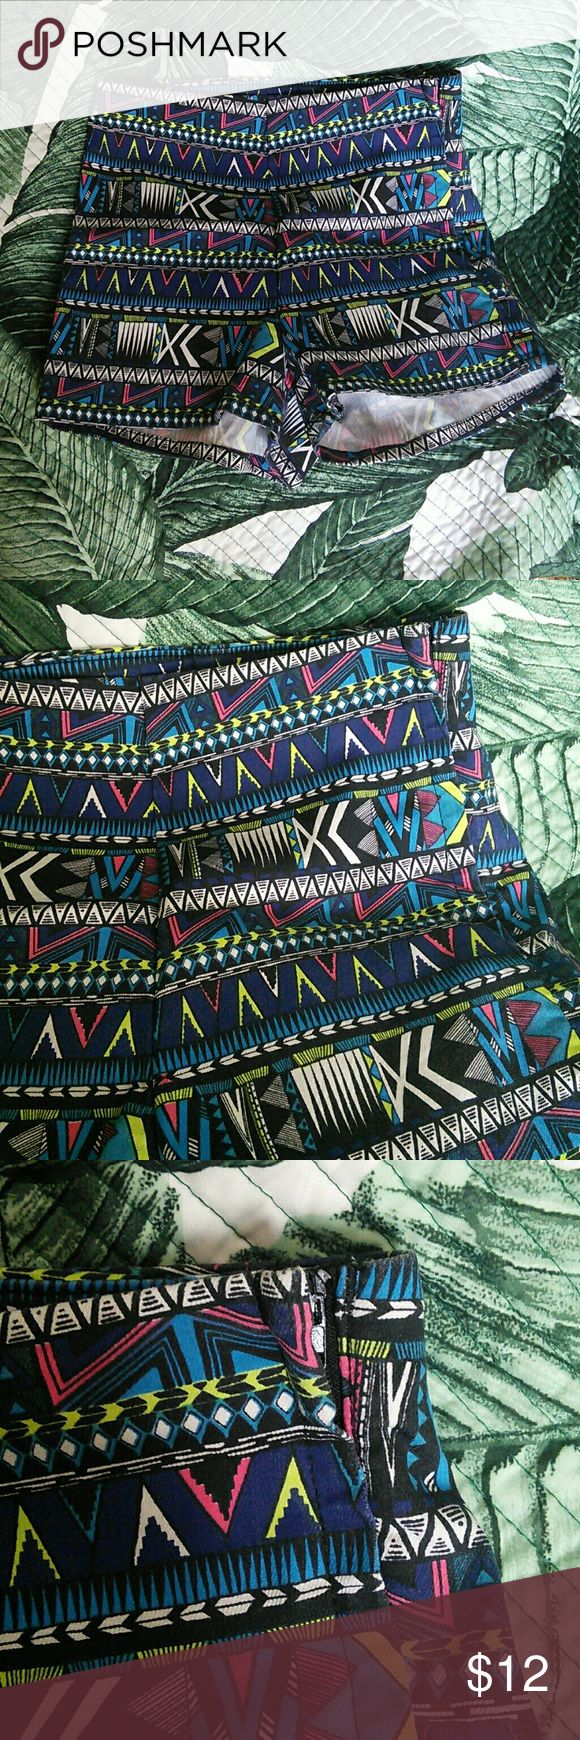 H&M High Waisted Aztec Print Shorts In excellent used condition  Size 6 (small)  Has a side zipper   *NO TRADES!!* H&M Shorts